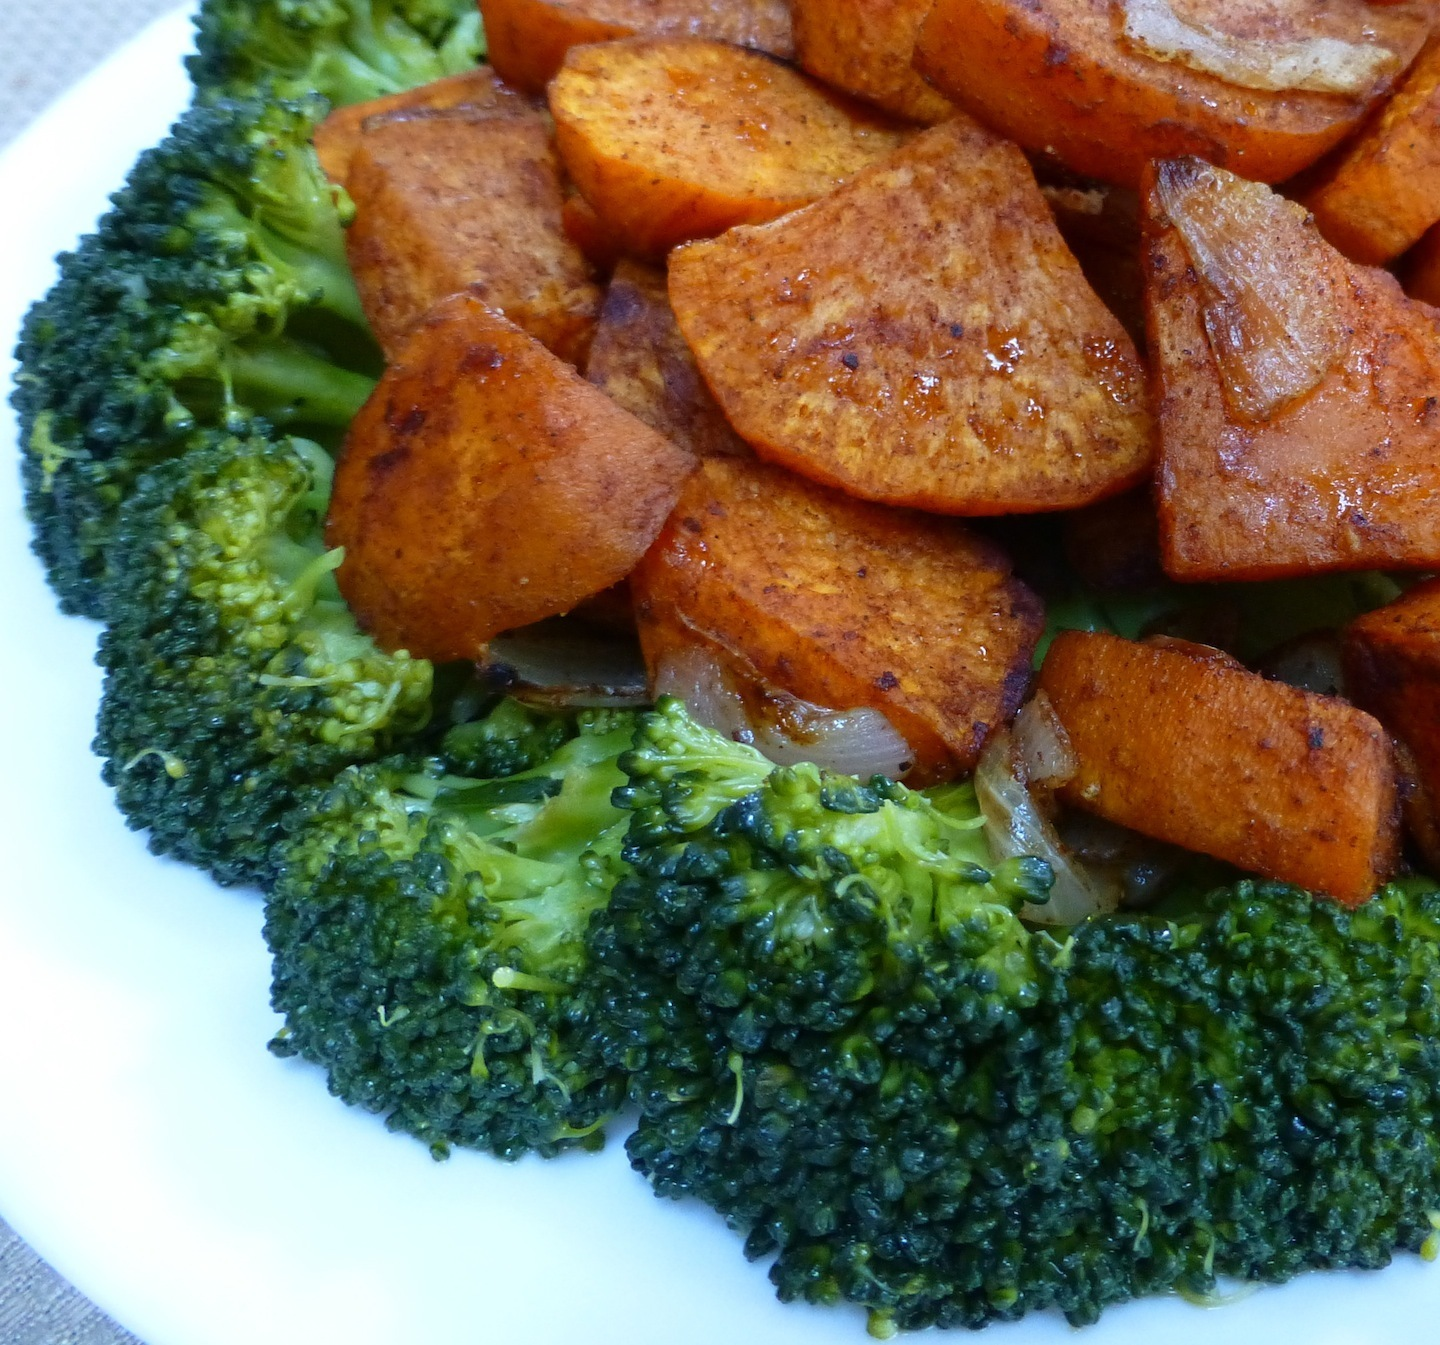 Roasted, Pumpkin Pie Spiced Sweet Potatoes On A Bed Of Broccoli - A Healthy And Colorful Dish For Easter Brunch